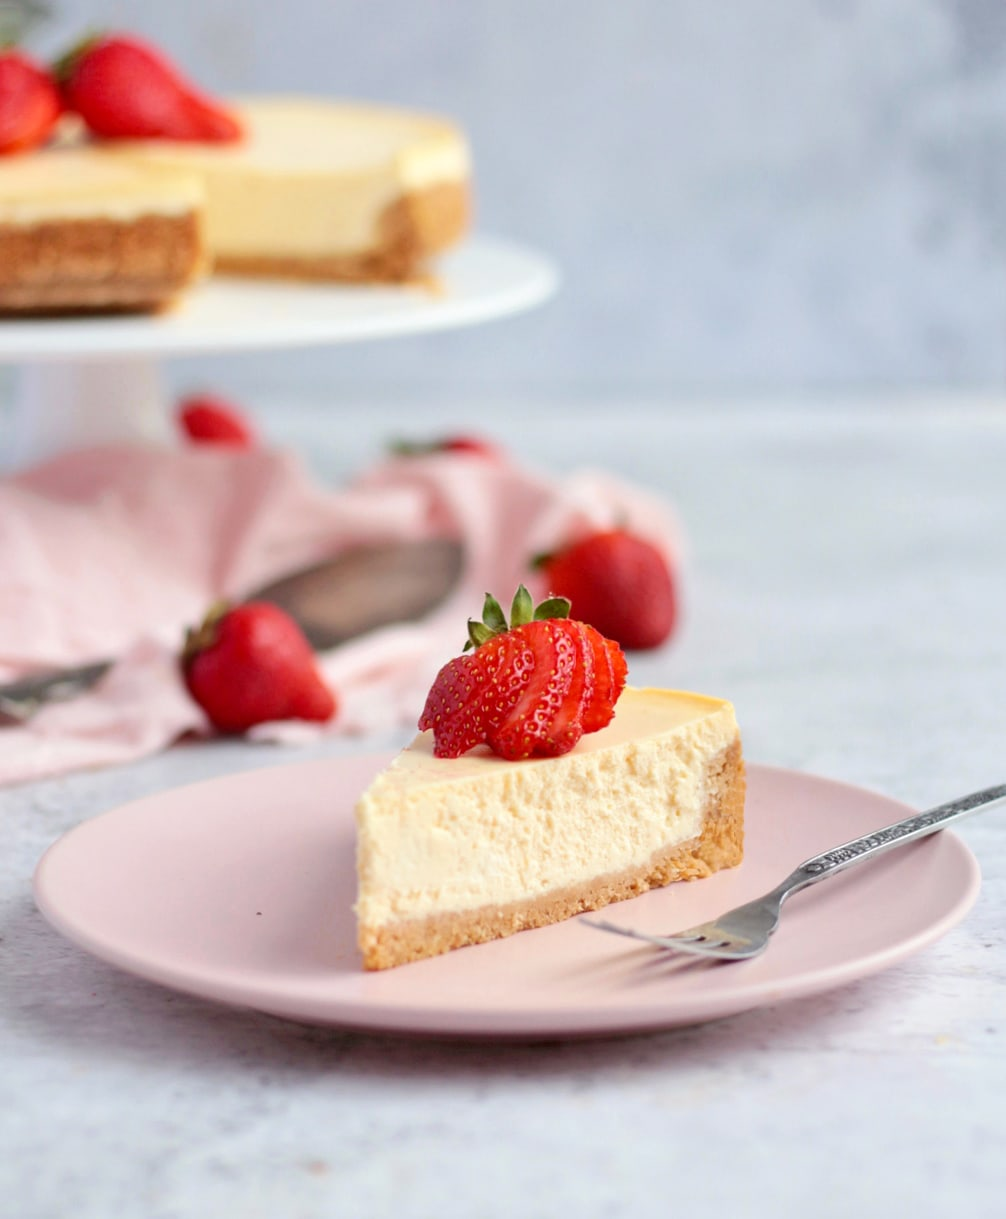 One slice of cheesecake topped with fresh strawberries on a pink plate